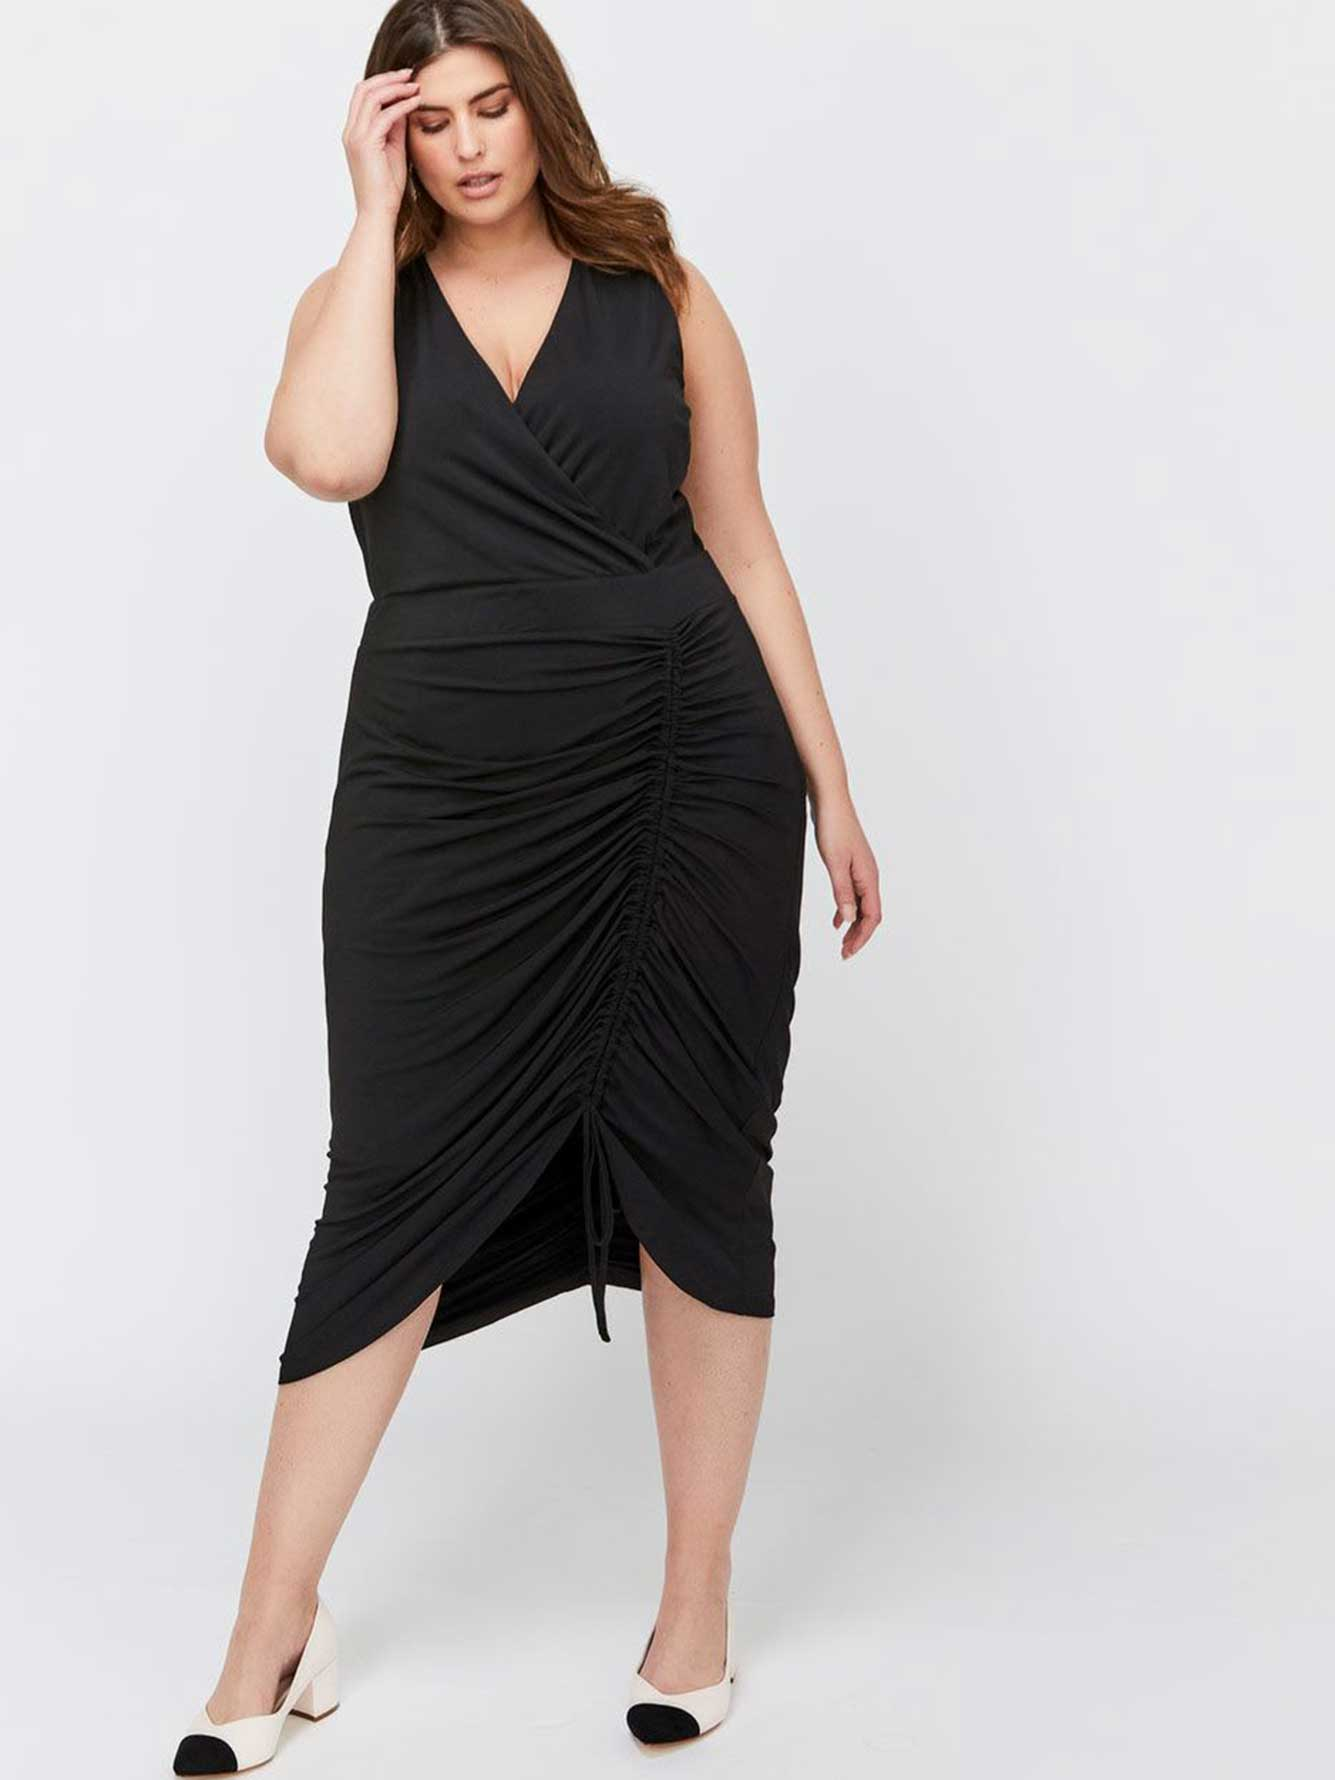 919bccc8497 City Chic Fitted Ruched Dress   Addition Elle